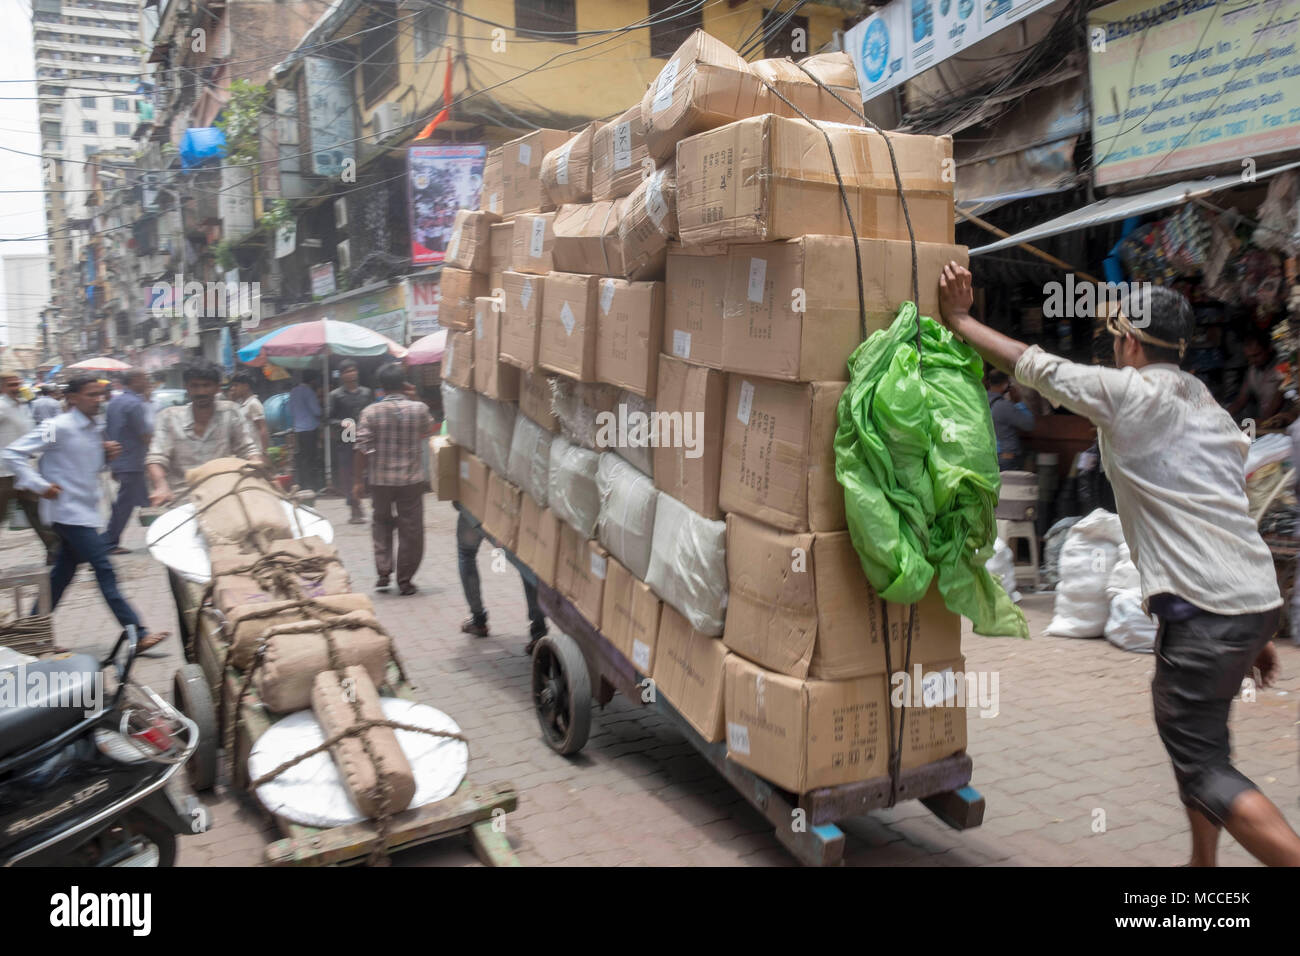 vendors pushing an over-laden cart in a street off Nagdevi street near Crawford Market in Mumbai, India - Stock Image